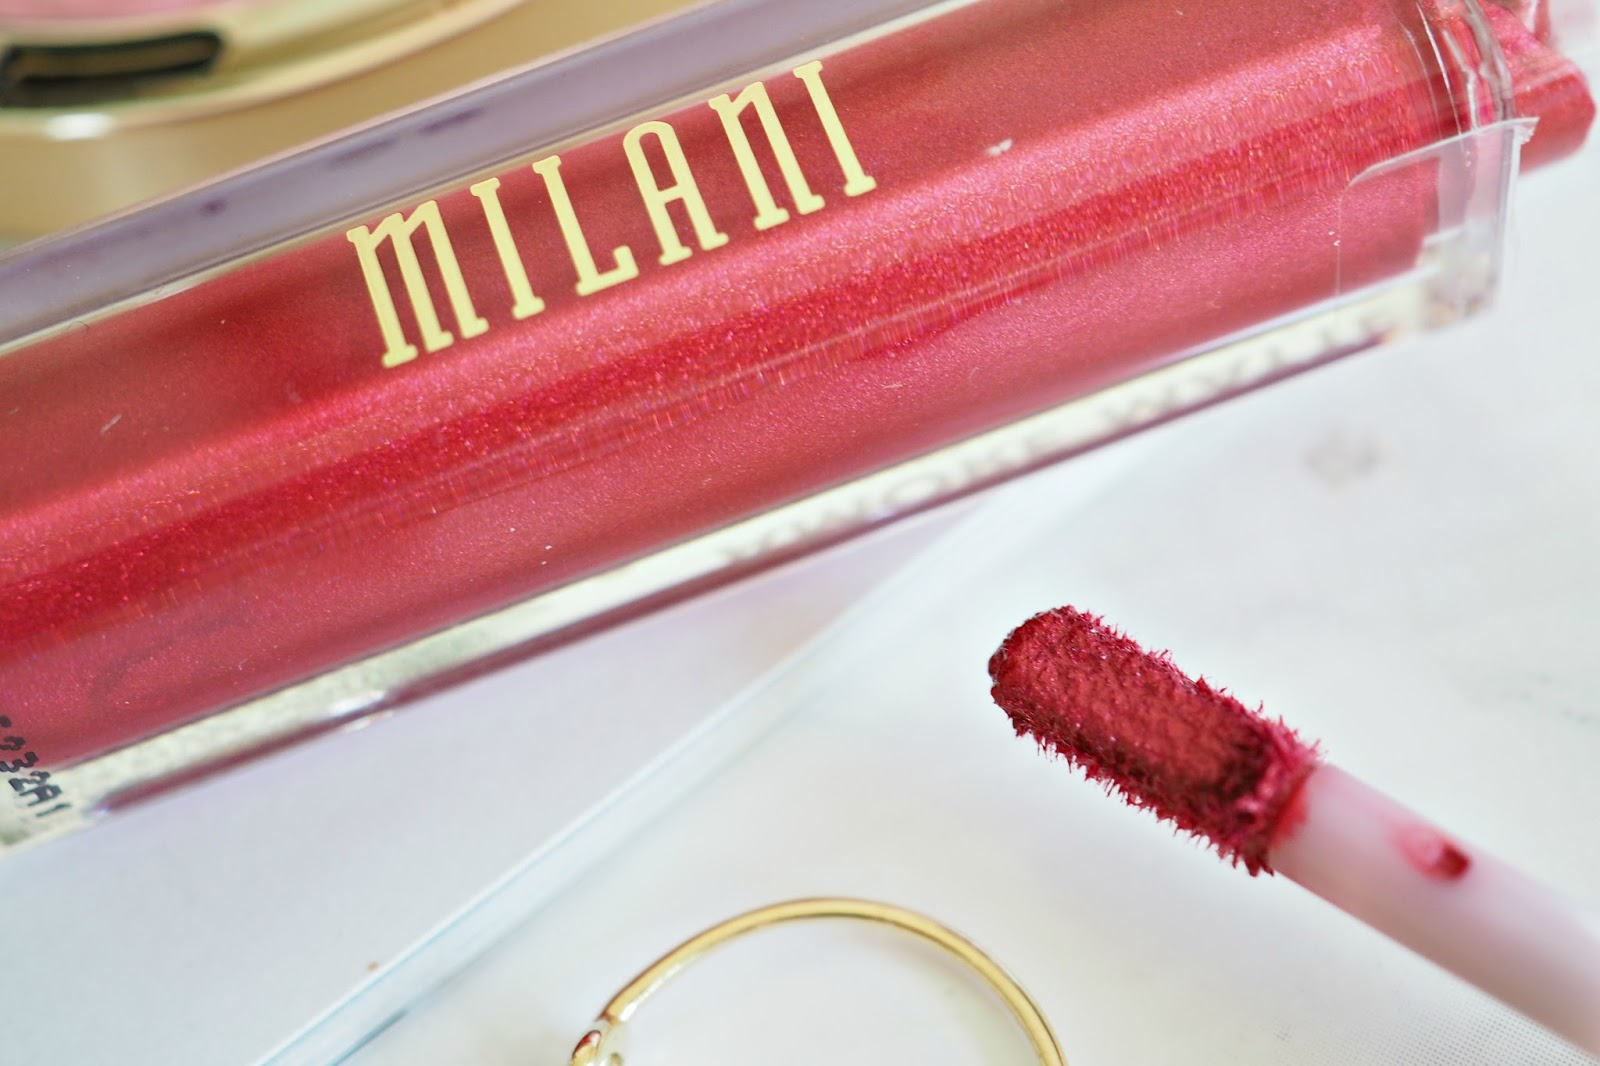 Milani Amore Metallic Lip Creme - shade 06 Mattely in Love